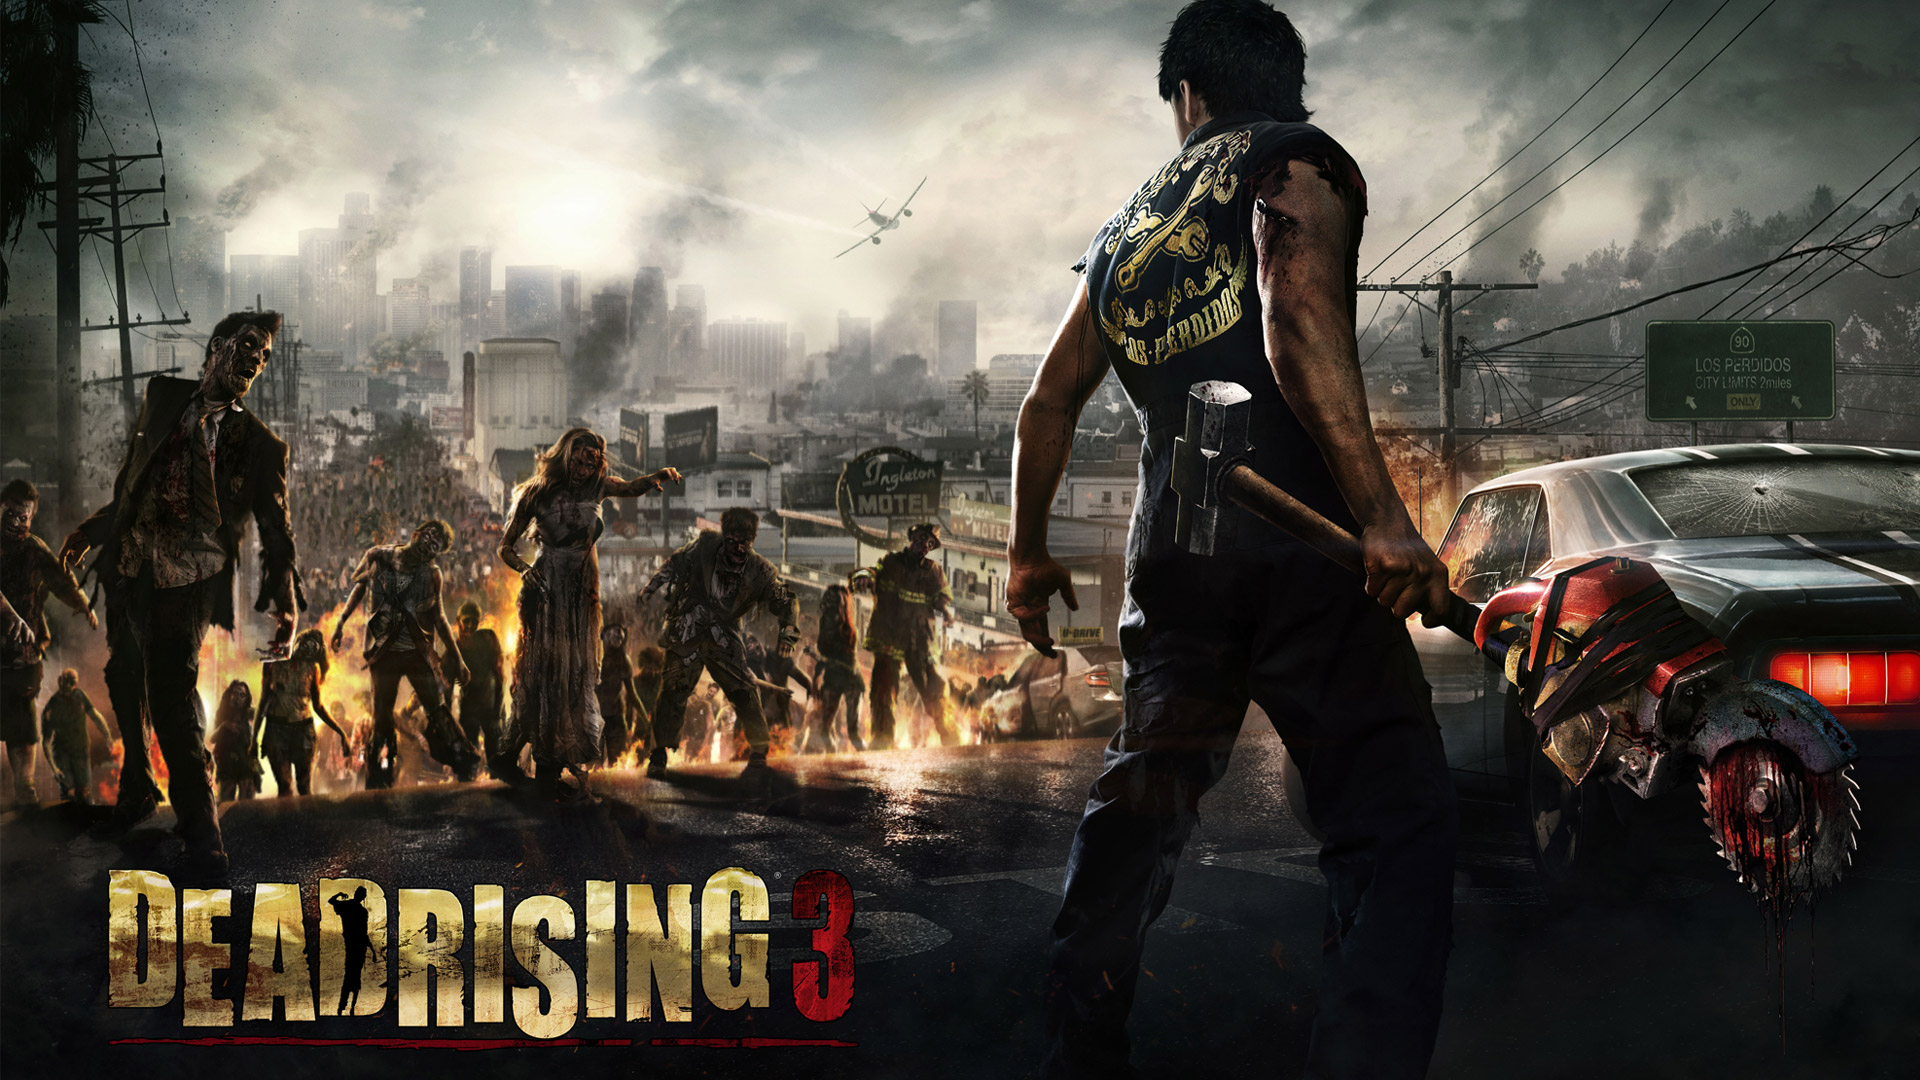 Dead Rising 3 Wallpaper in 1920x1080